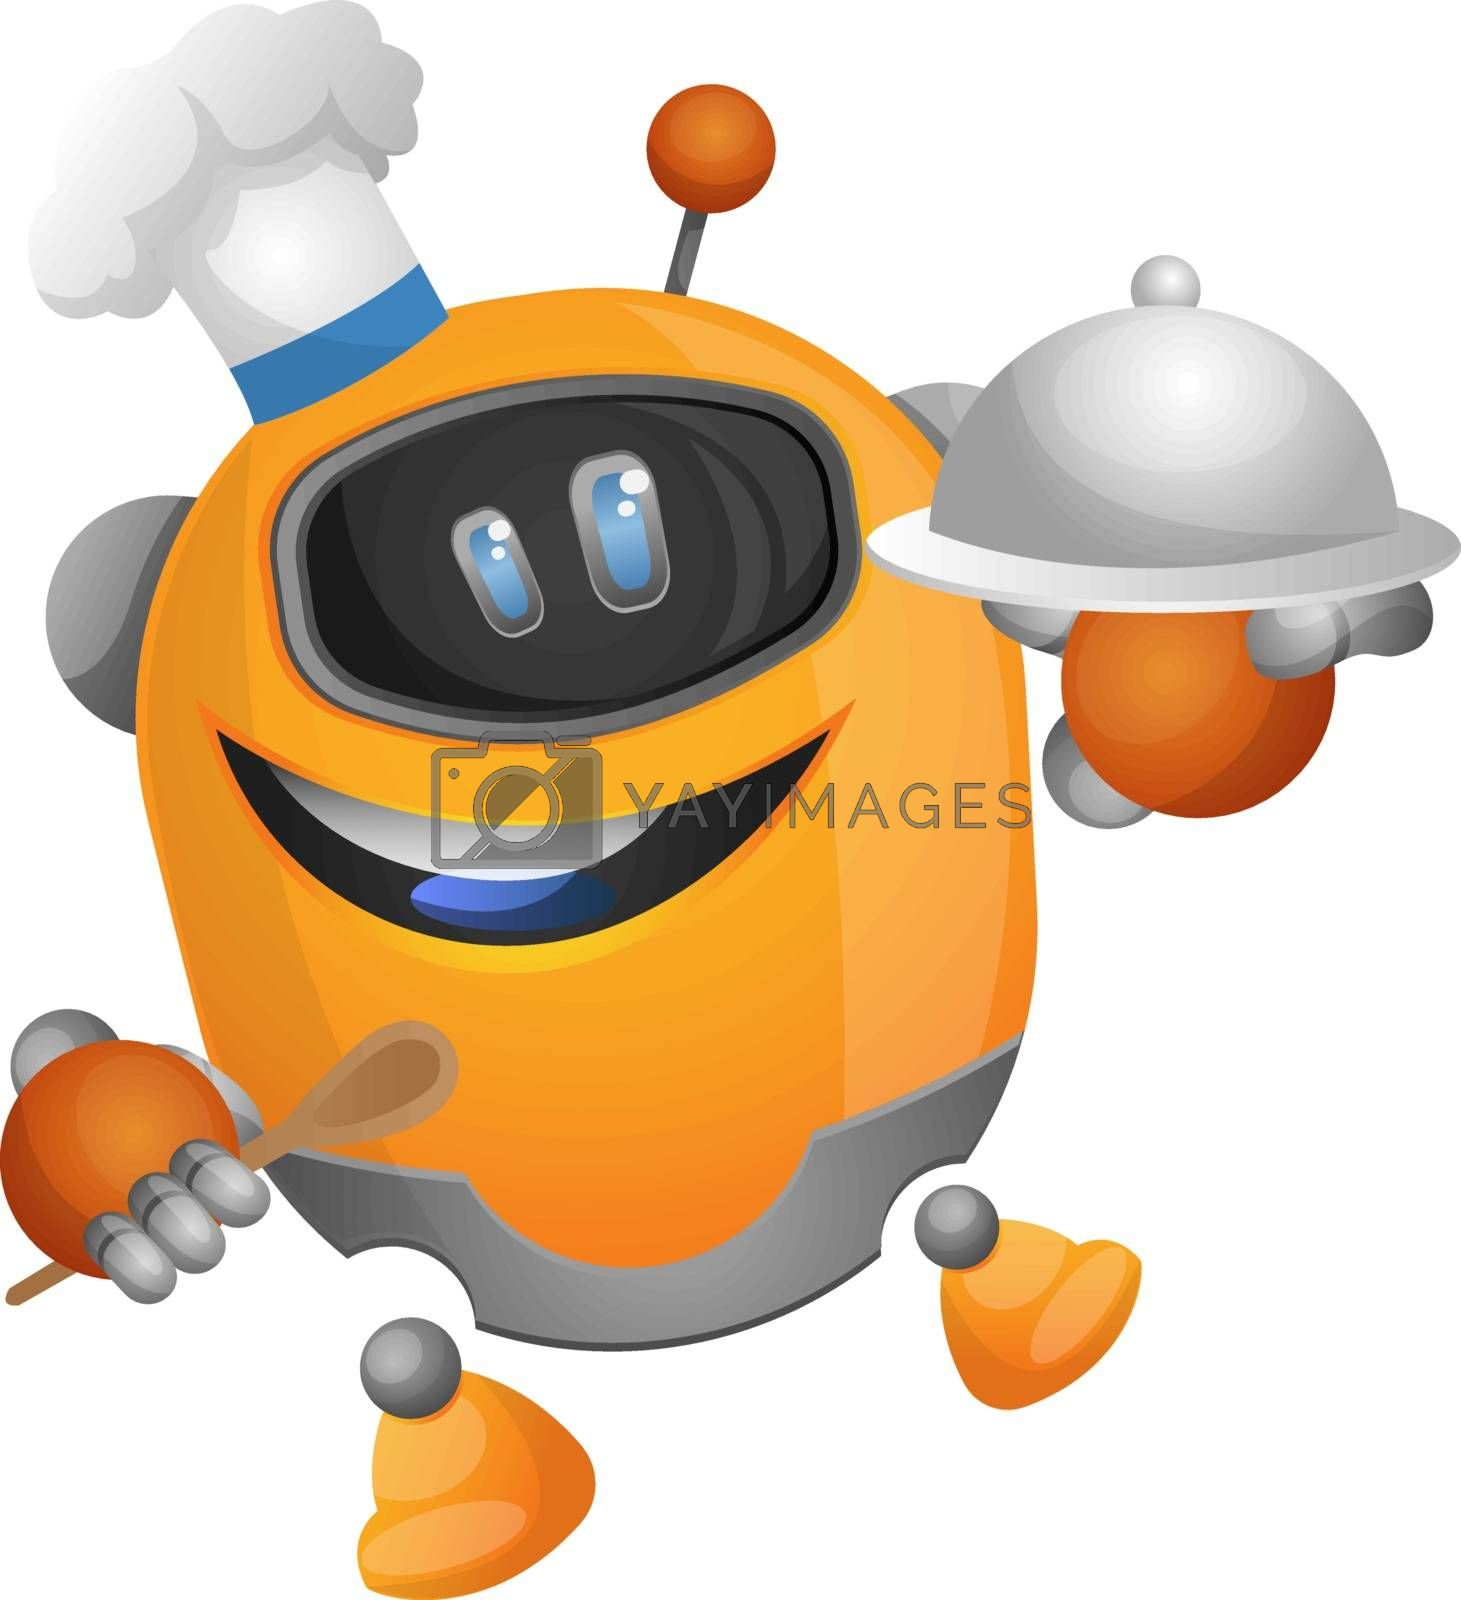 Royalty free image of Robotic chef illustration vector on white background by Morphart